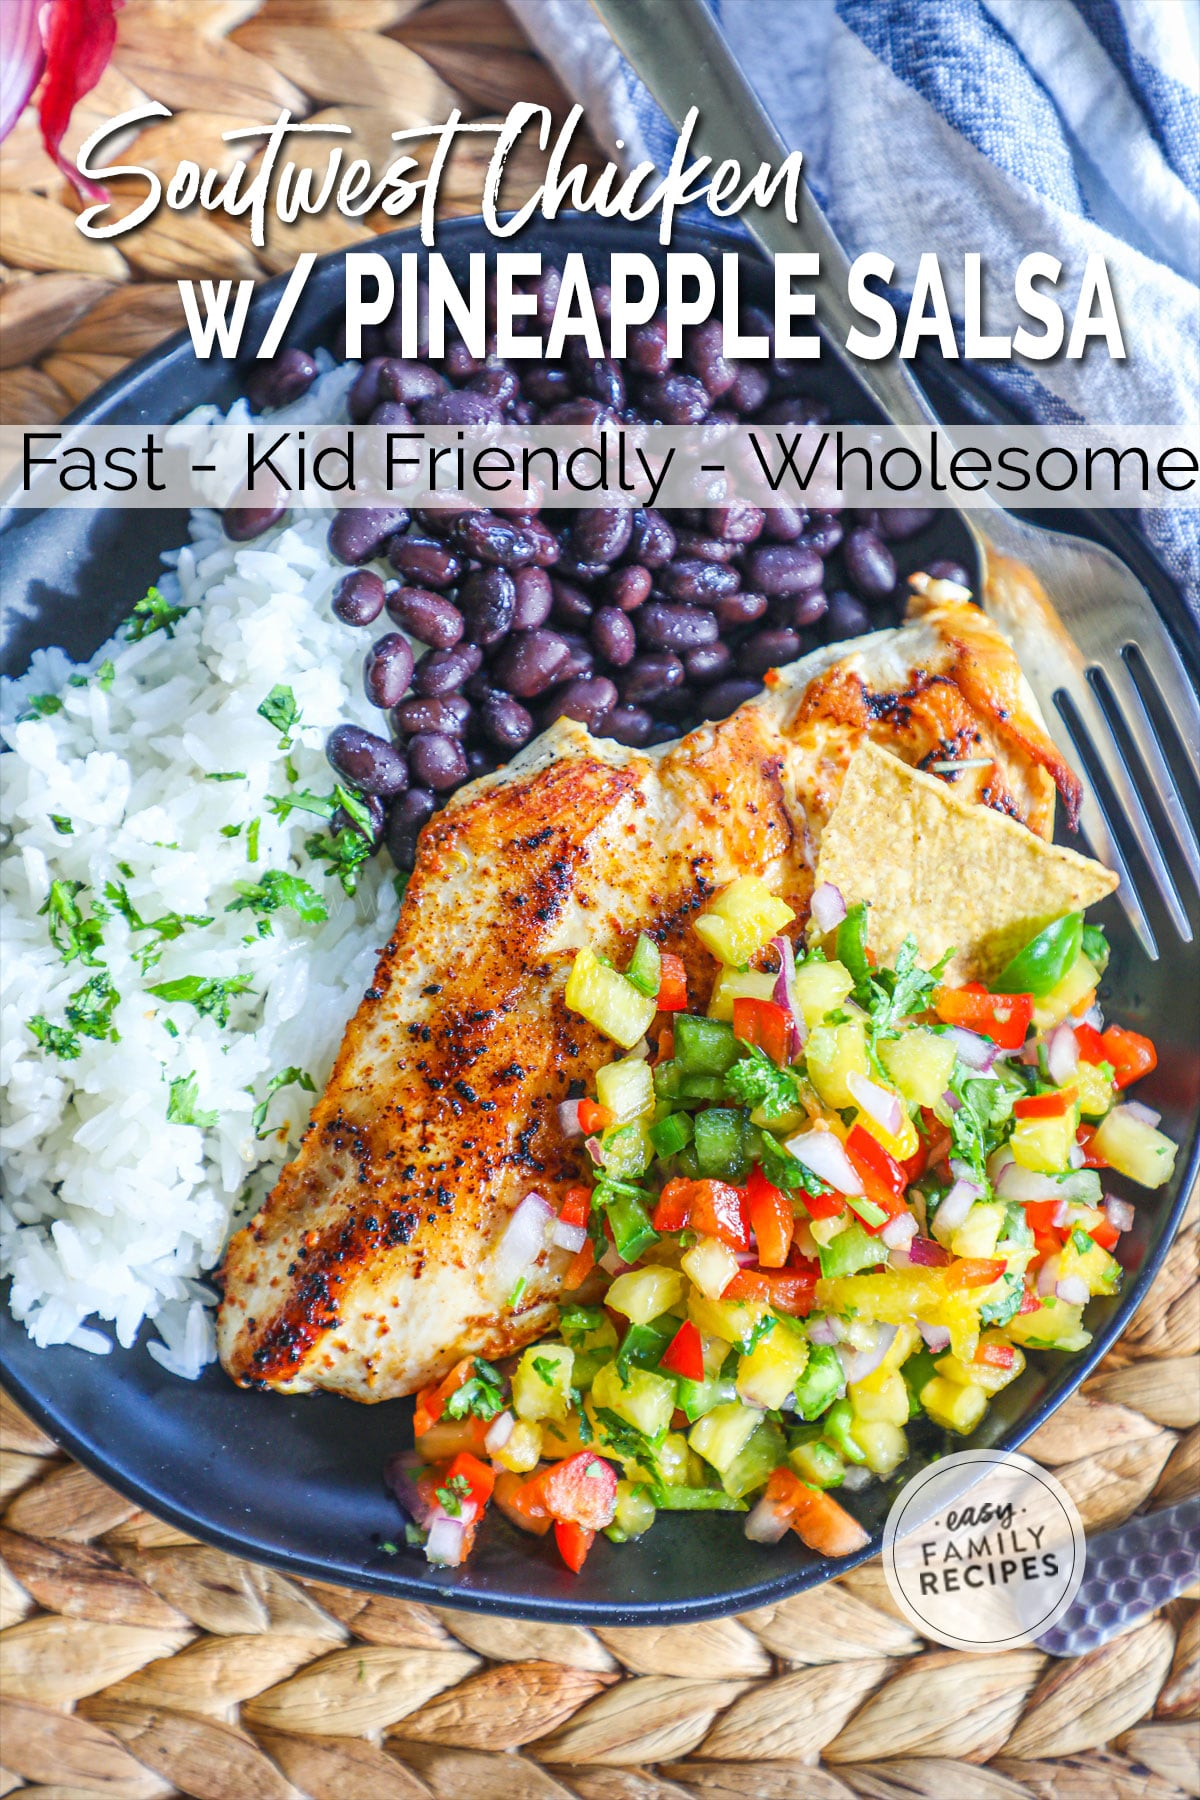 Seasoned Chicken breast with pineapple salsa served with rice and beans